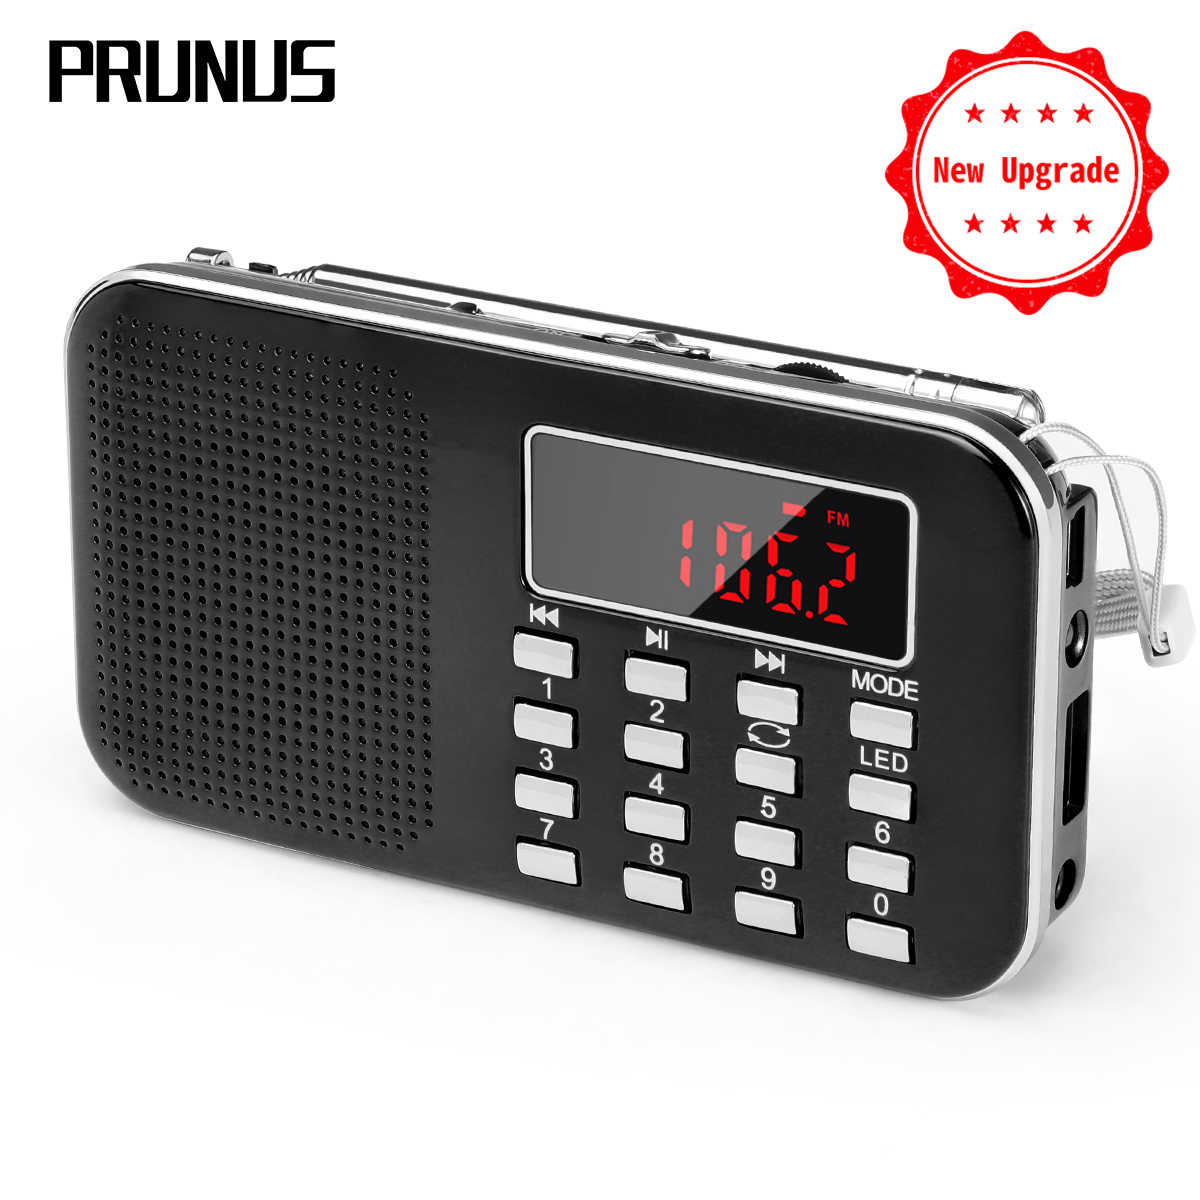 PRUNUS L-218 Mini receptor de radio fm AM/FM/SD tarjeta MP3 play altavoz USB/AUX radio portátil de emergencia con luz Led/antena